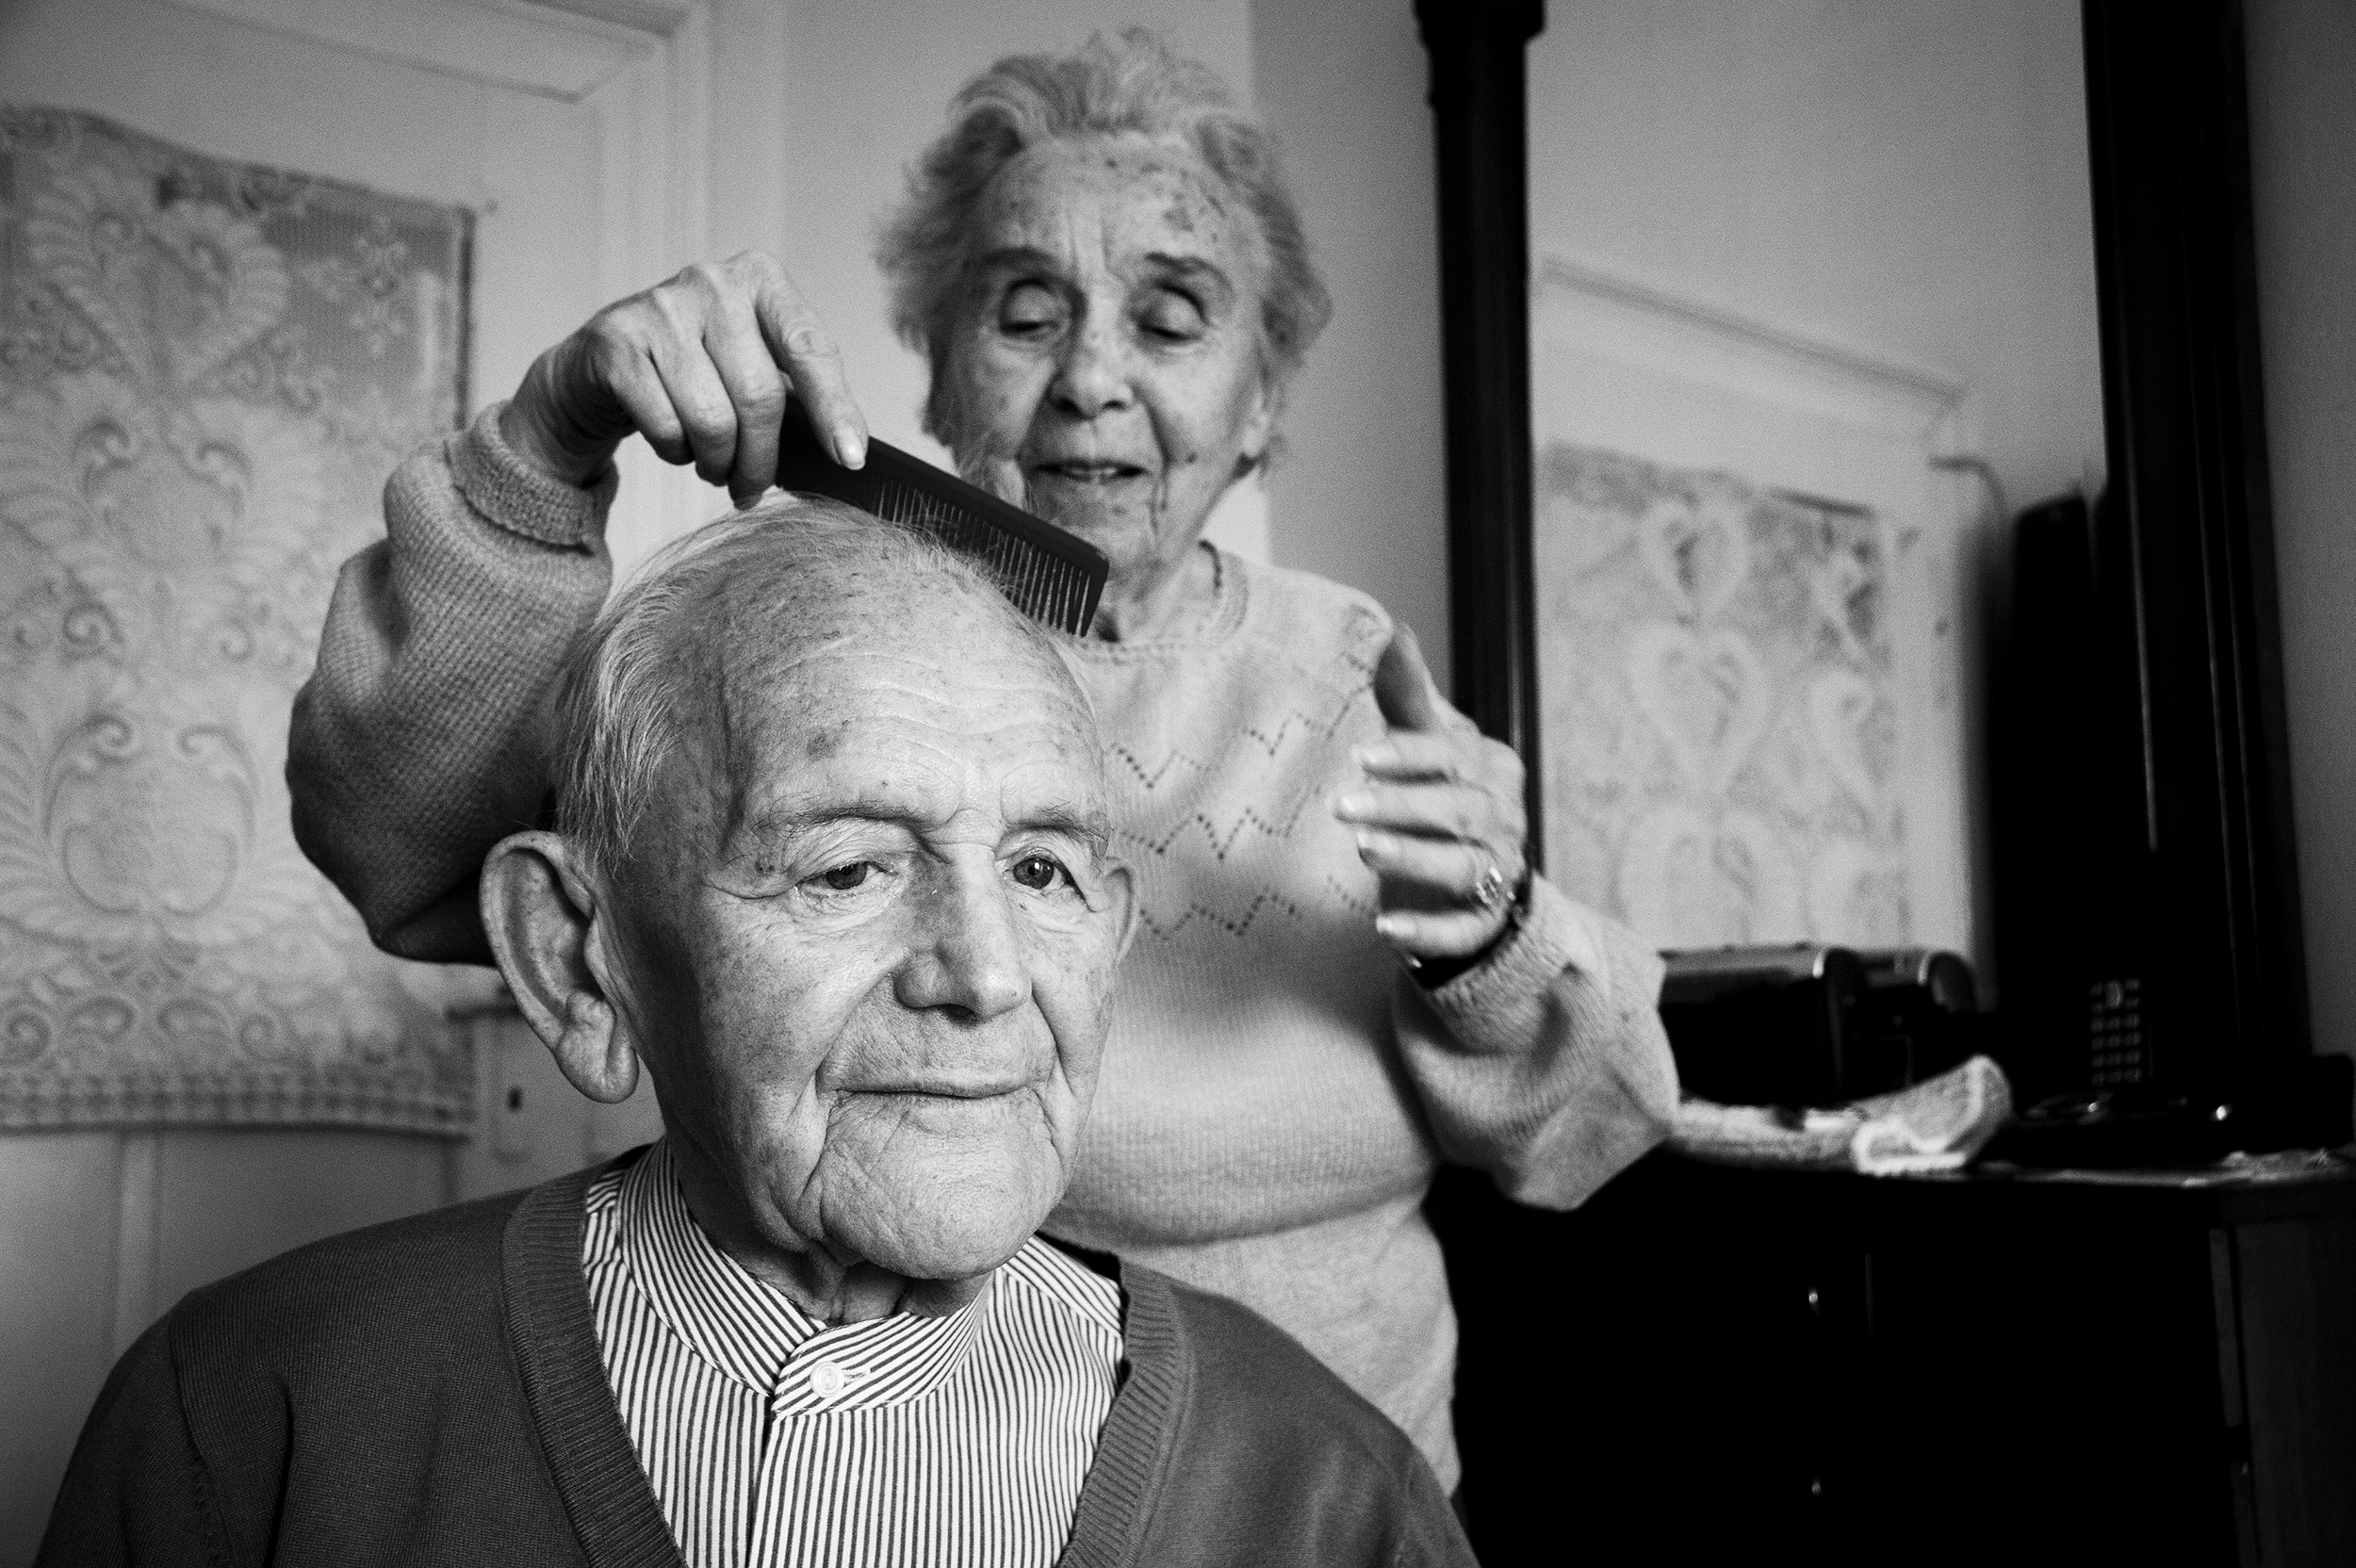 Elisabeta Steuer, 91, cares for her husband Ladislau, 94, at their home in downtown Oradea on January 16, 2015. Both survivors of the Holocaust, Ladislau was deported to a labor camp in Hungary while Elisabeta survived in a ghetto in the Romanian village of Ginta. They have been married for 66 years.